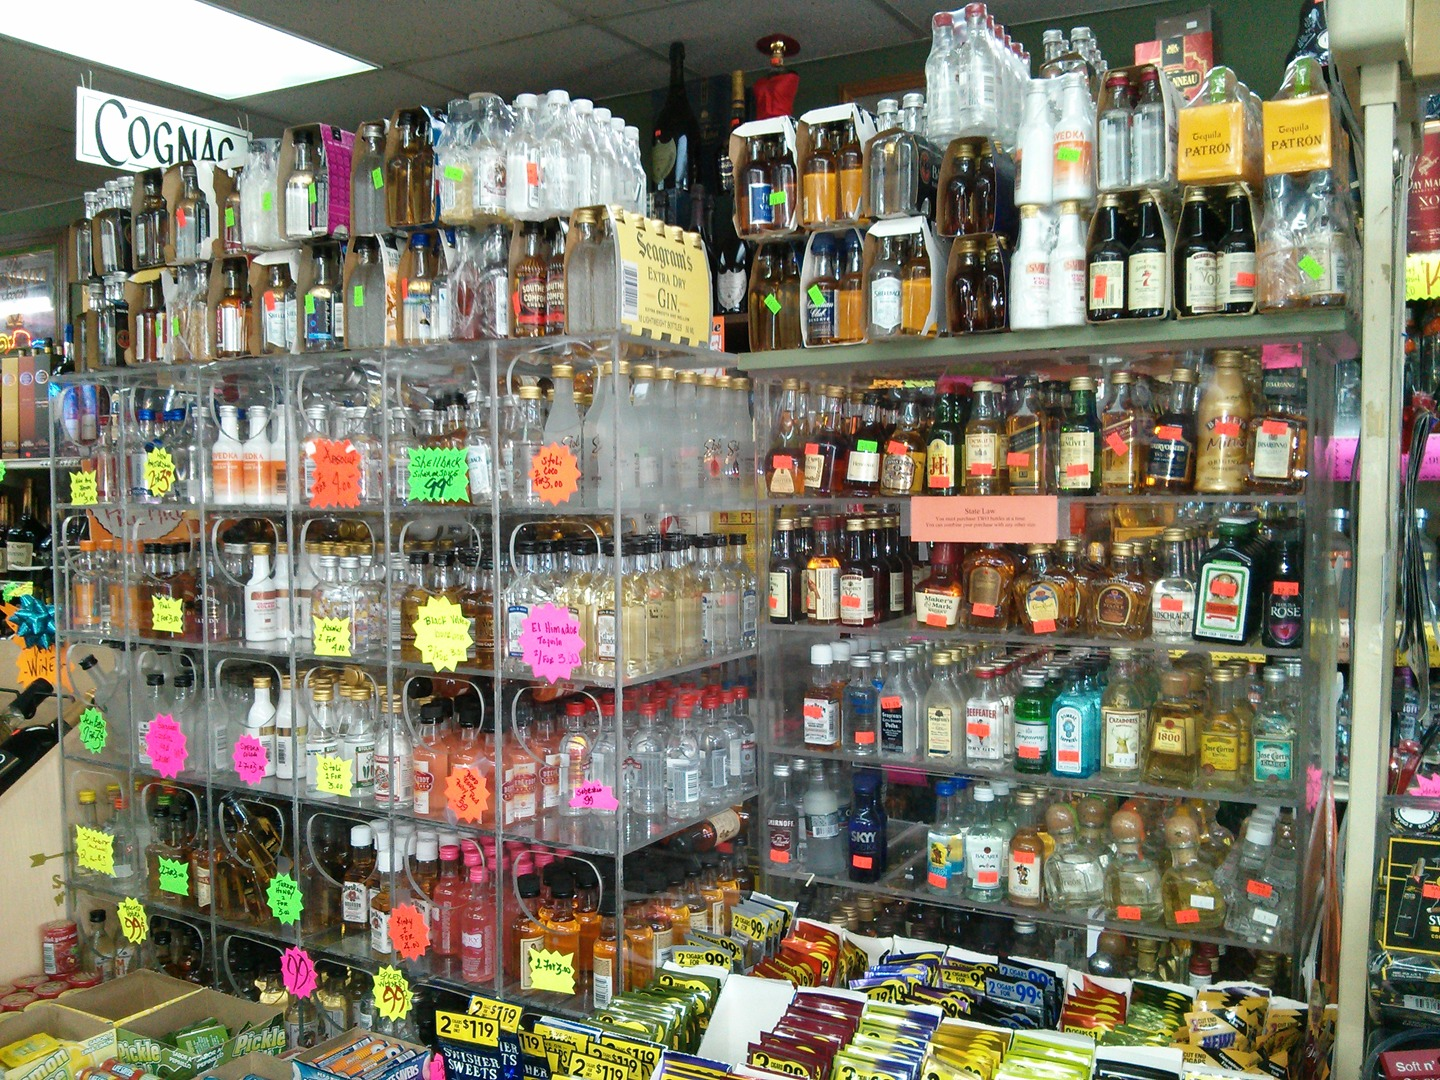 Copyright THE LIQUOR STORE #5. All rights reserved.